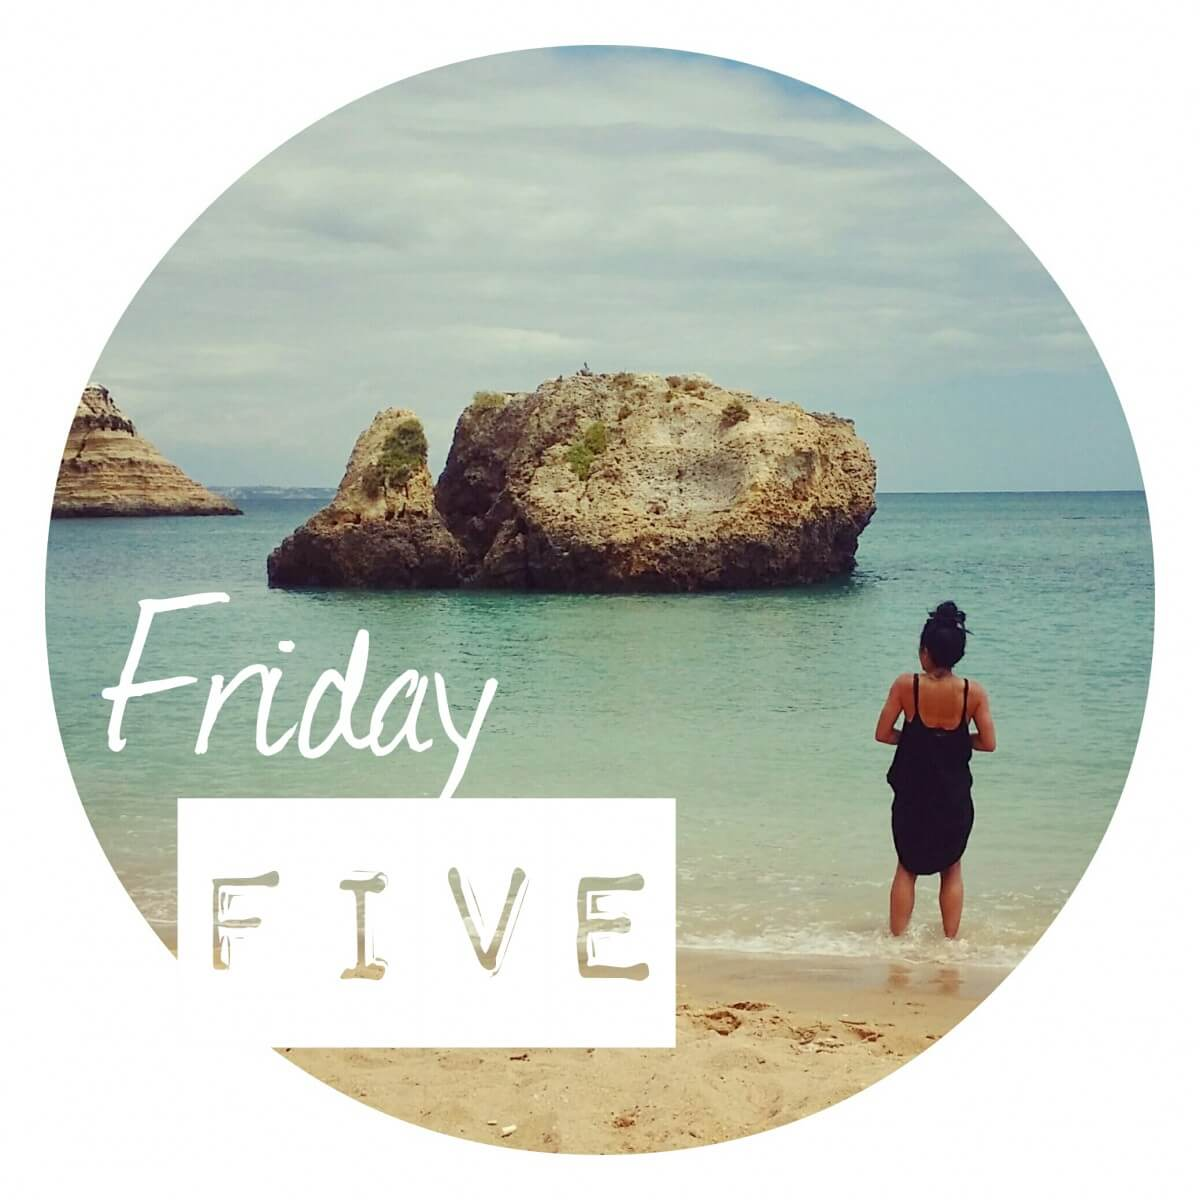 Friday five where is tara povey Irish travel blog